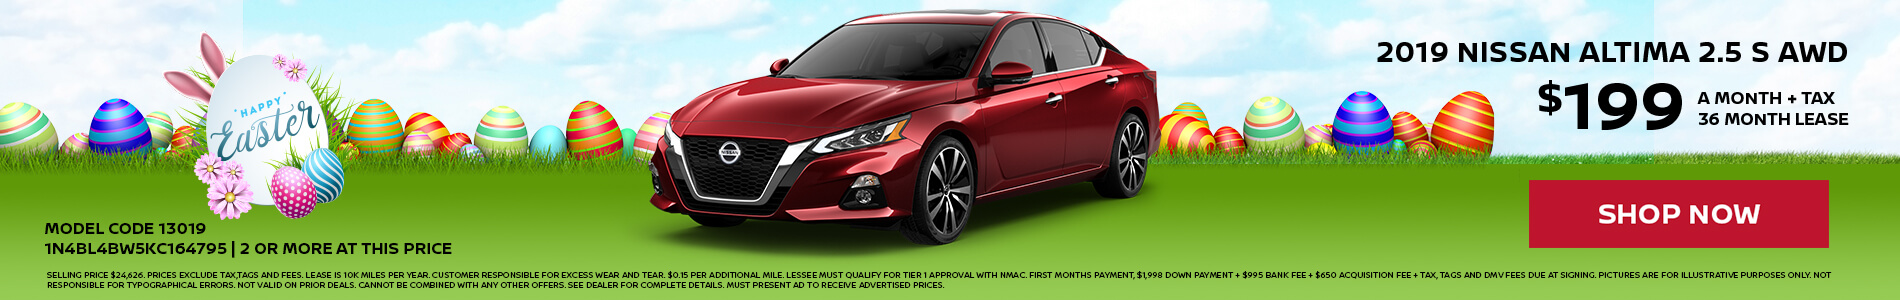 Nissan Altima $199 Lease